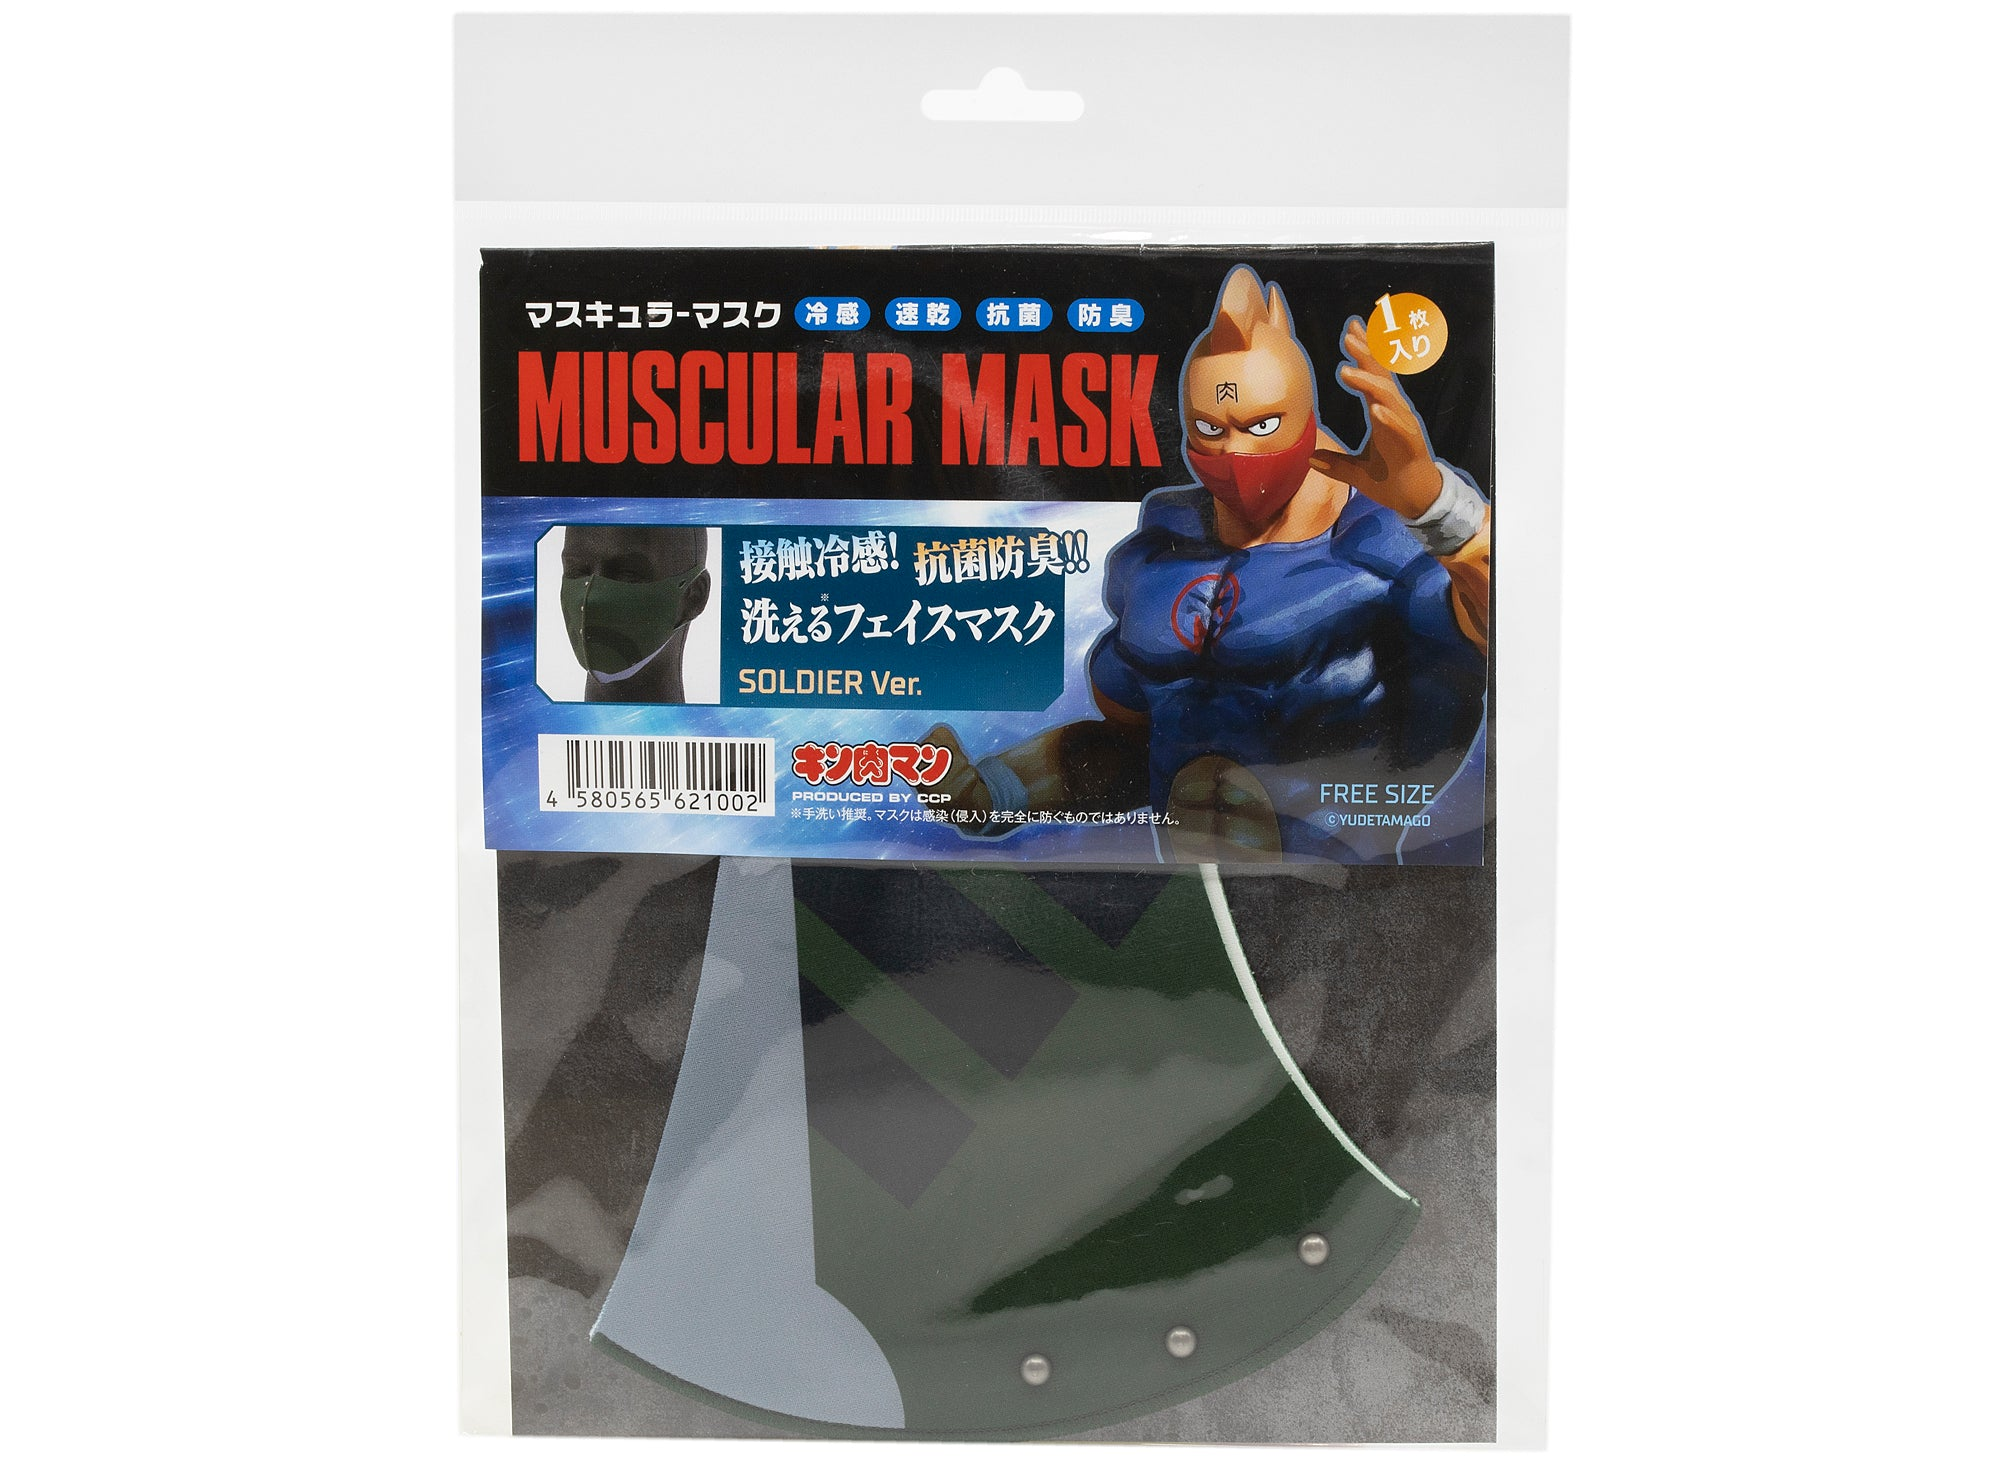 Medicom Toy Soldier Face Mask